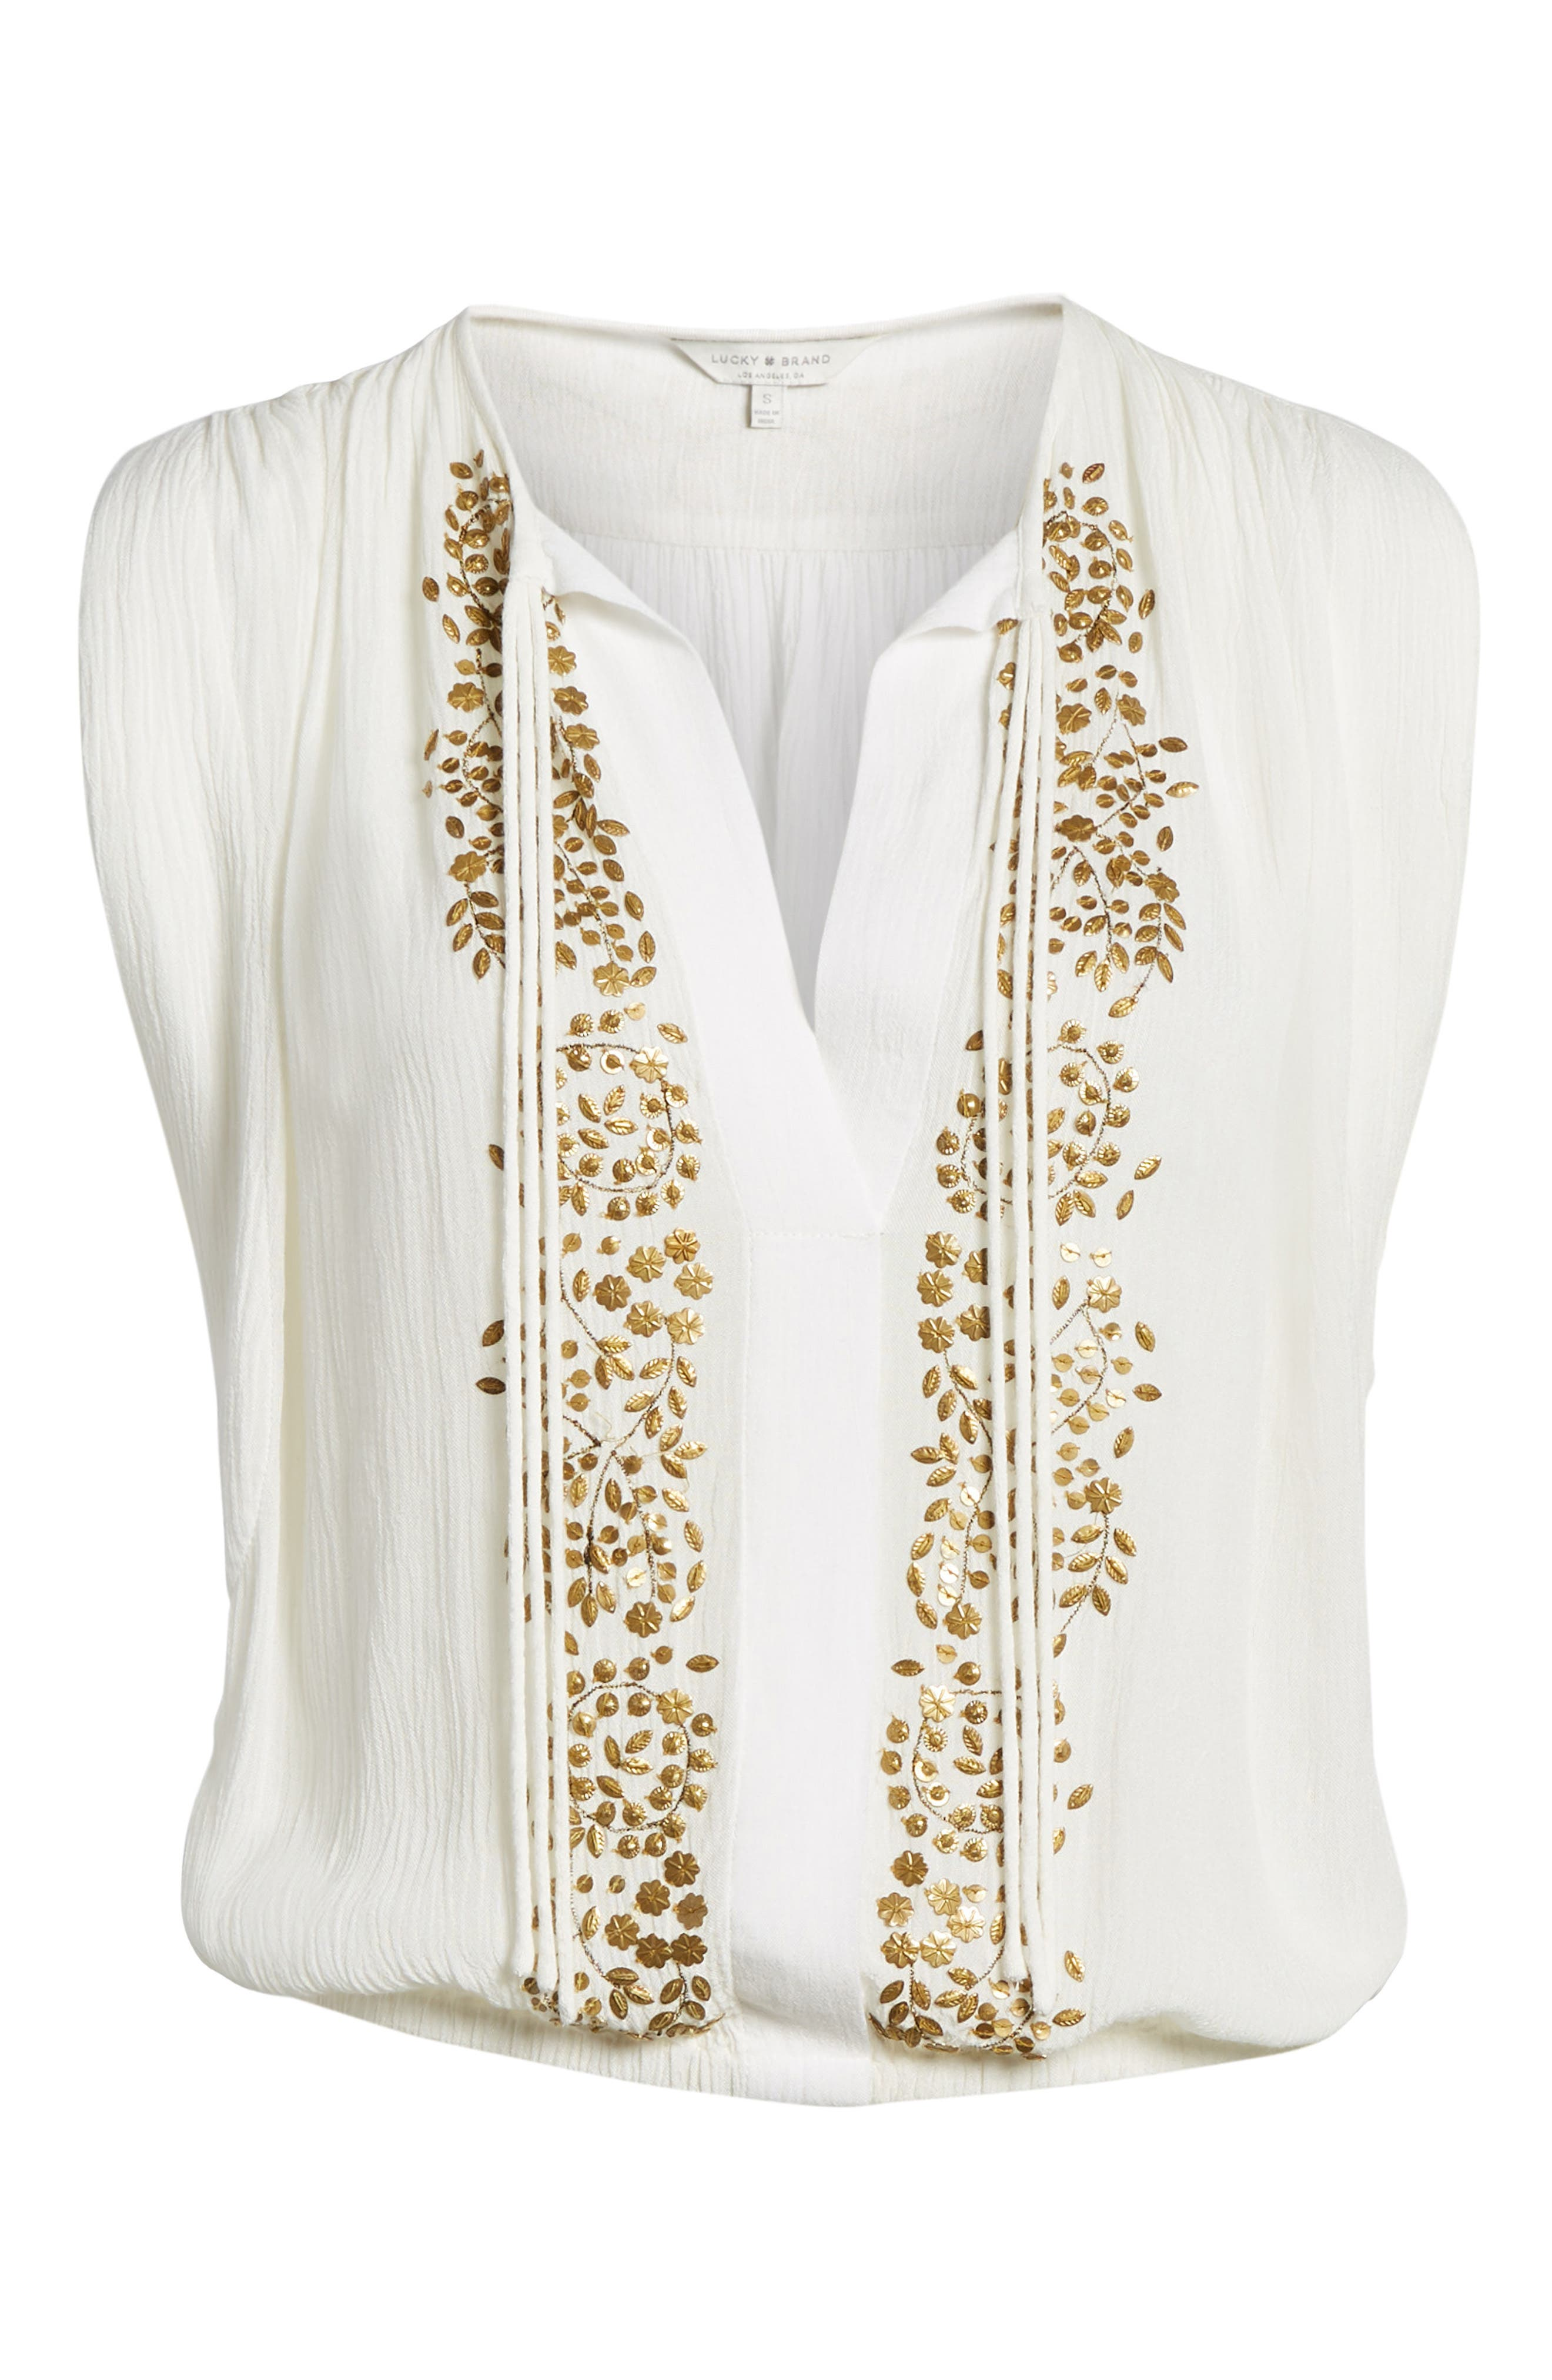 Helena Embellished Top,                             Alternate thumbnail 7, color,                             Marshmallow